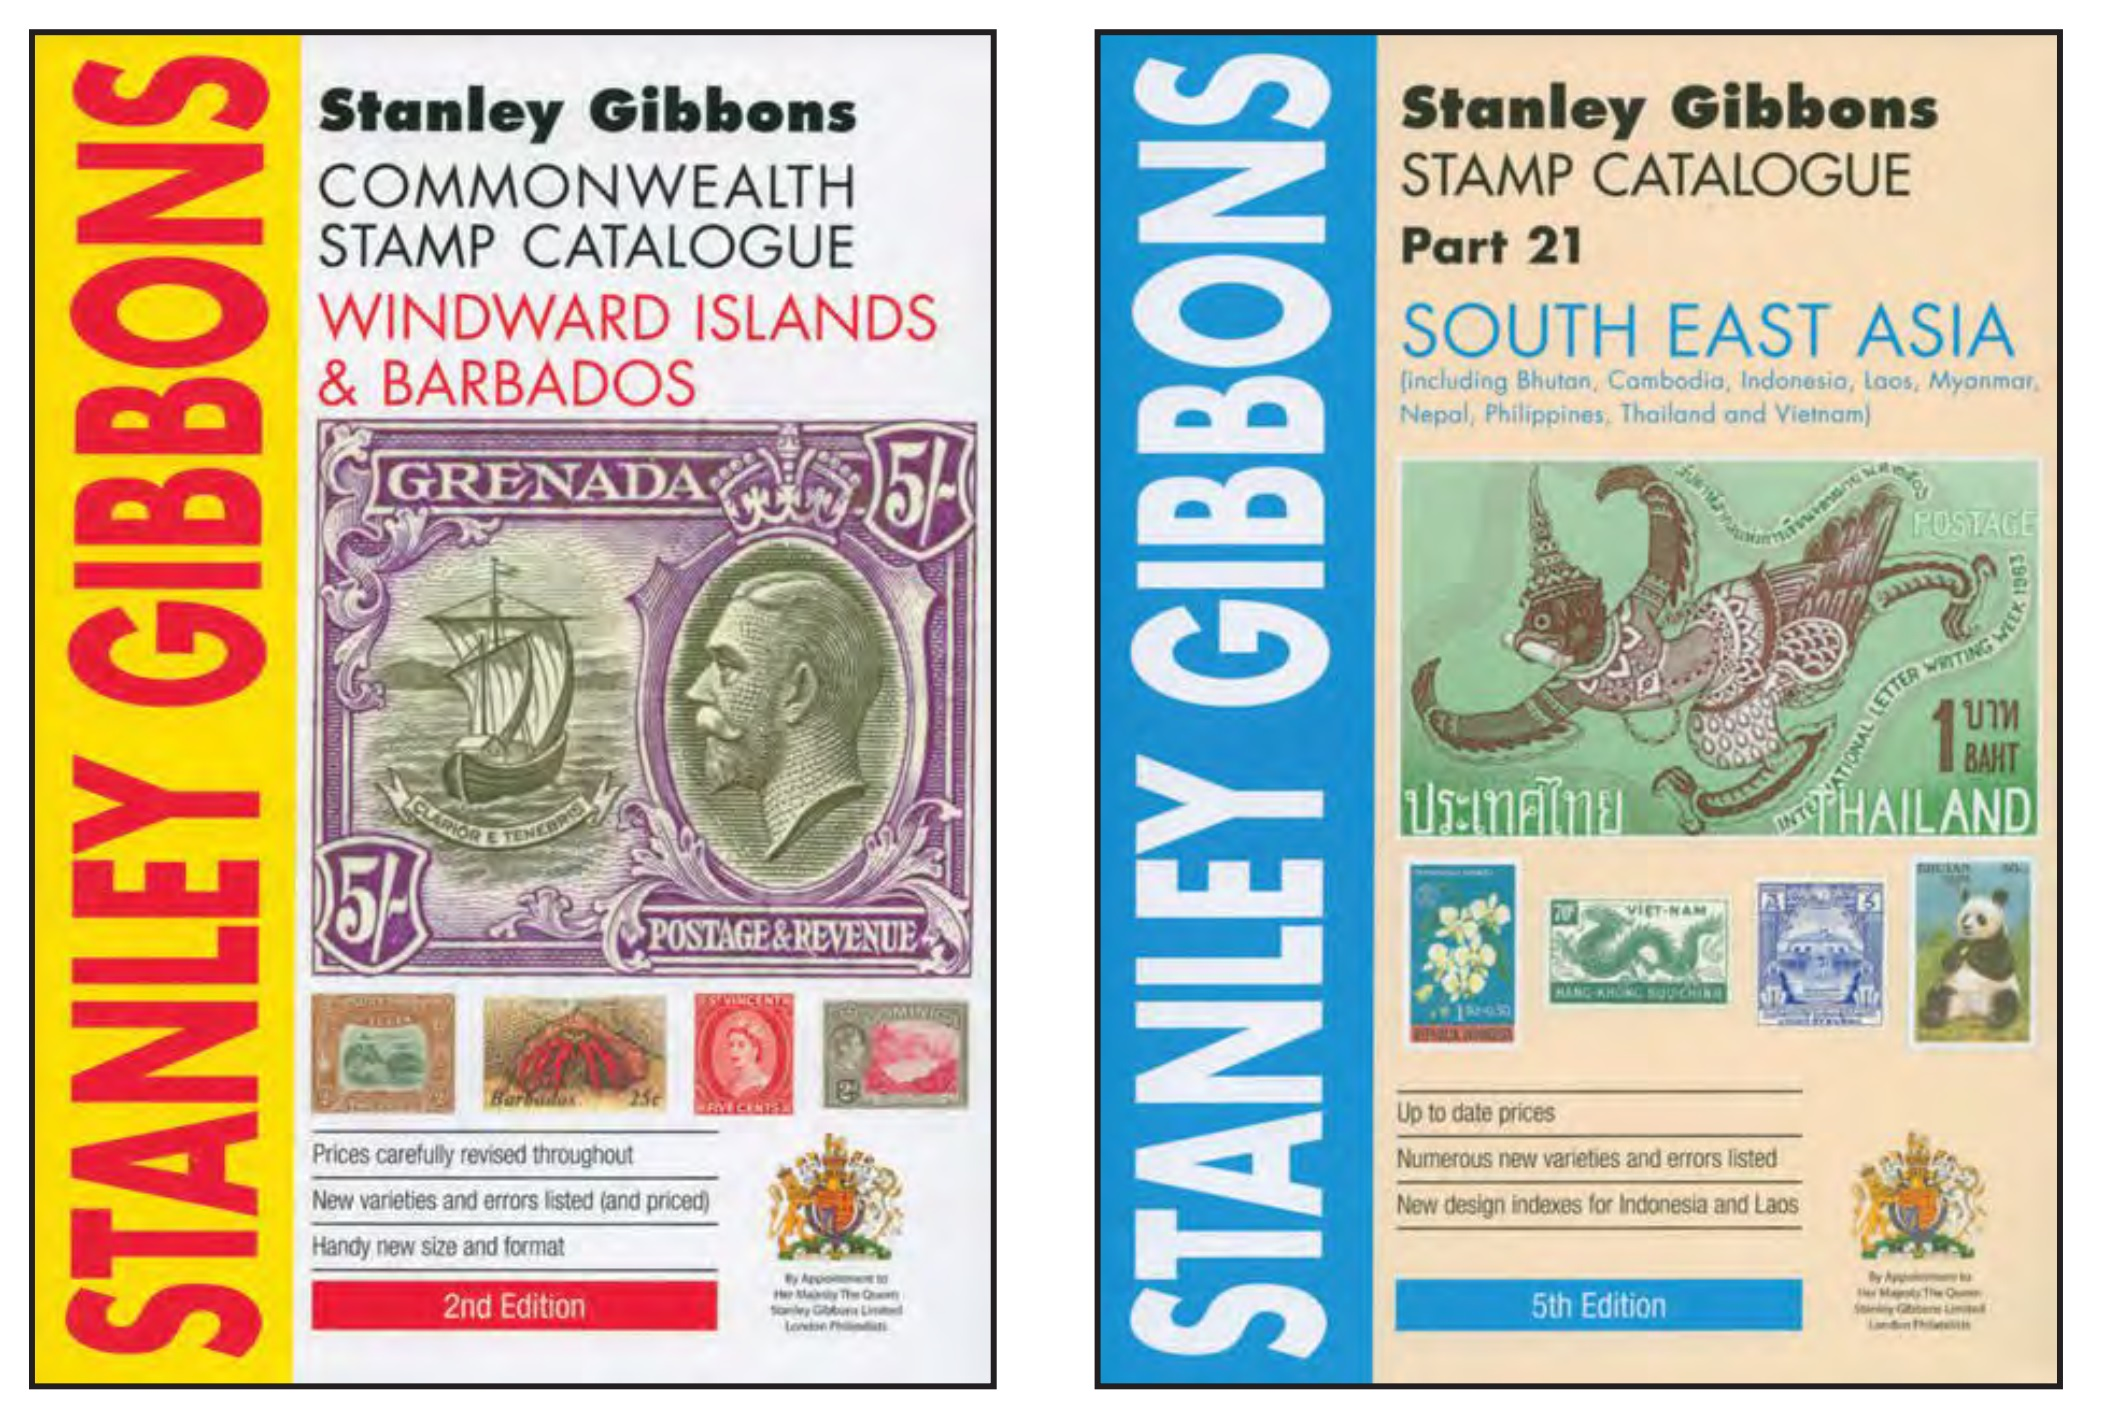 Stanley Gibbons publishes many regional and country-specific catalogues